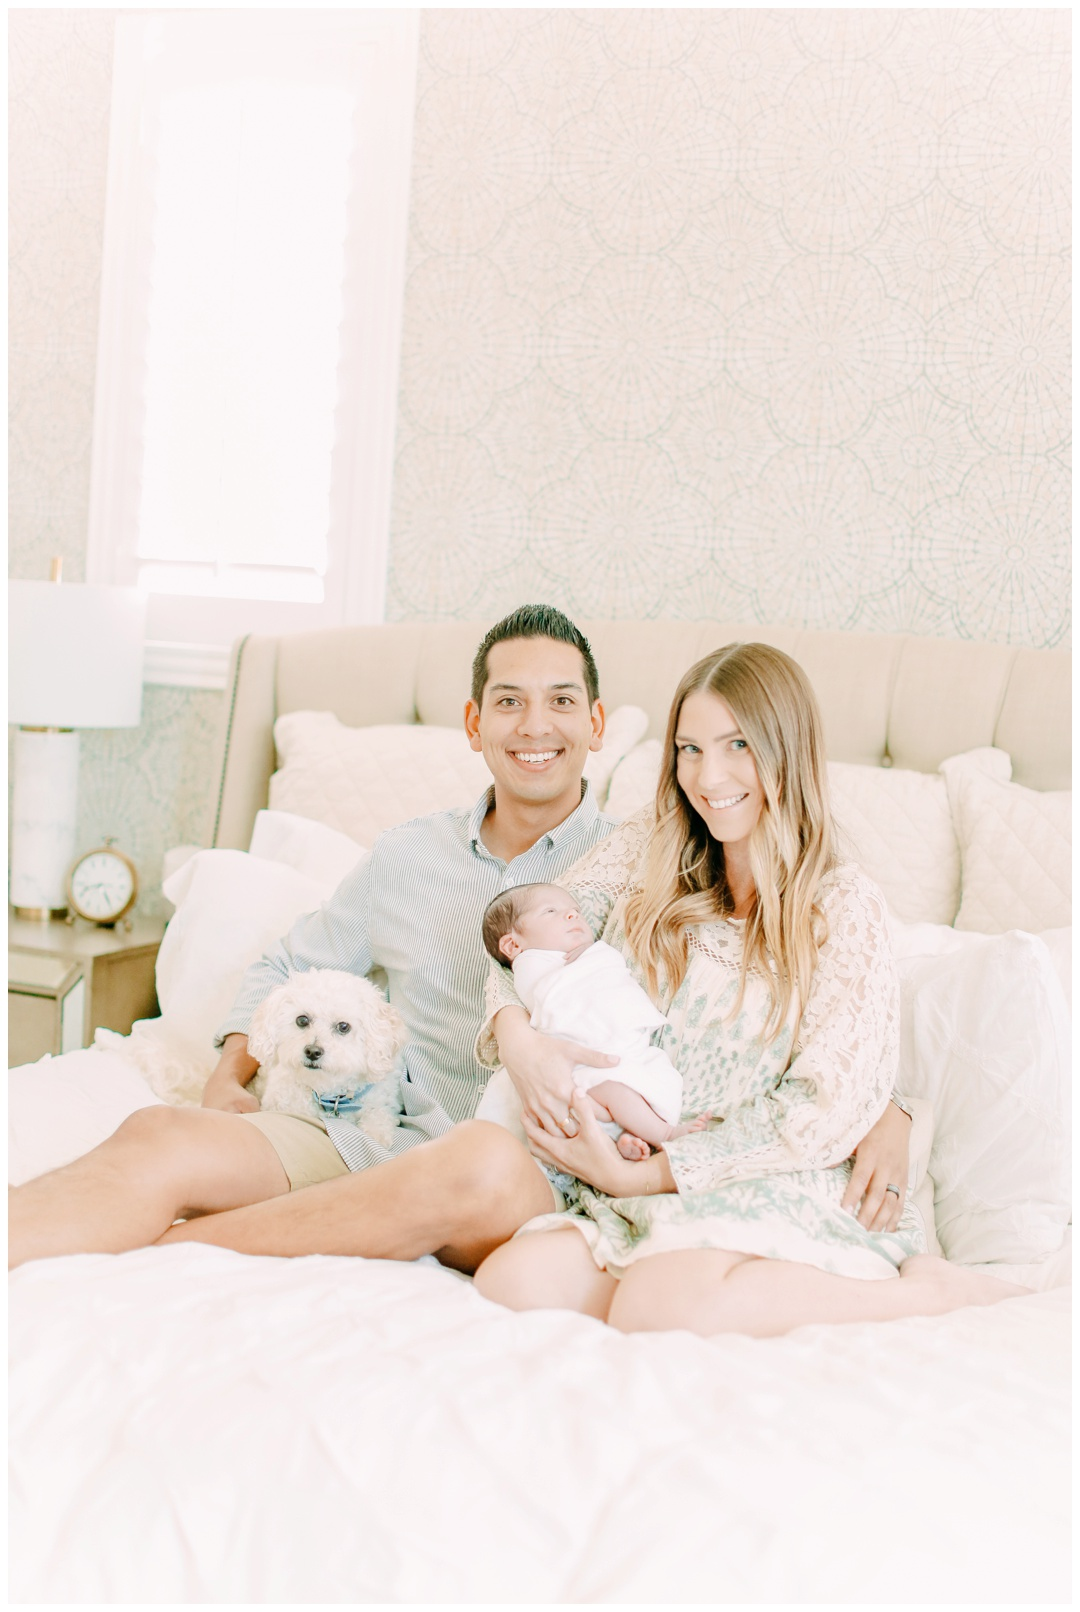 The_Garcia_Family_Lifestyle_Newport_Beach_Family_Photographer_Orange_County_Newborn_Photography_Cori_Kleckner_Photography_Orange_County_Beach_Photographer_Newborn_Photos_Session_Crystal_Cove_Session__1553.jpg